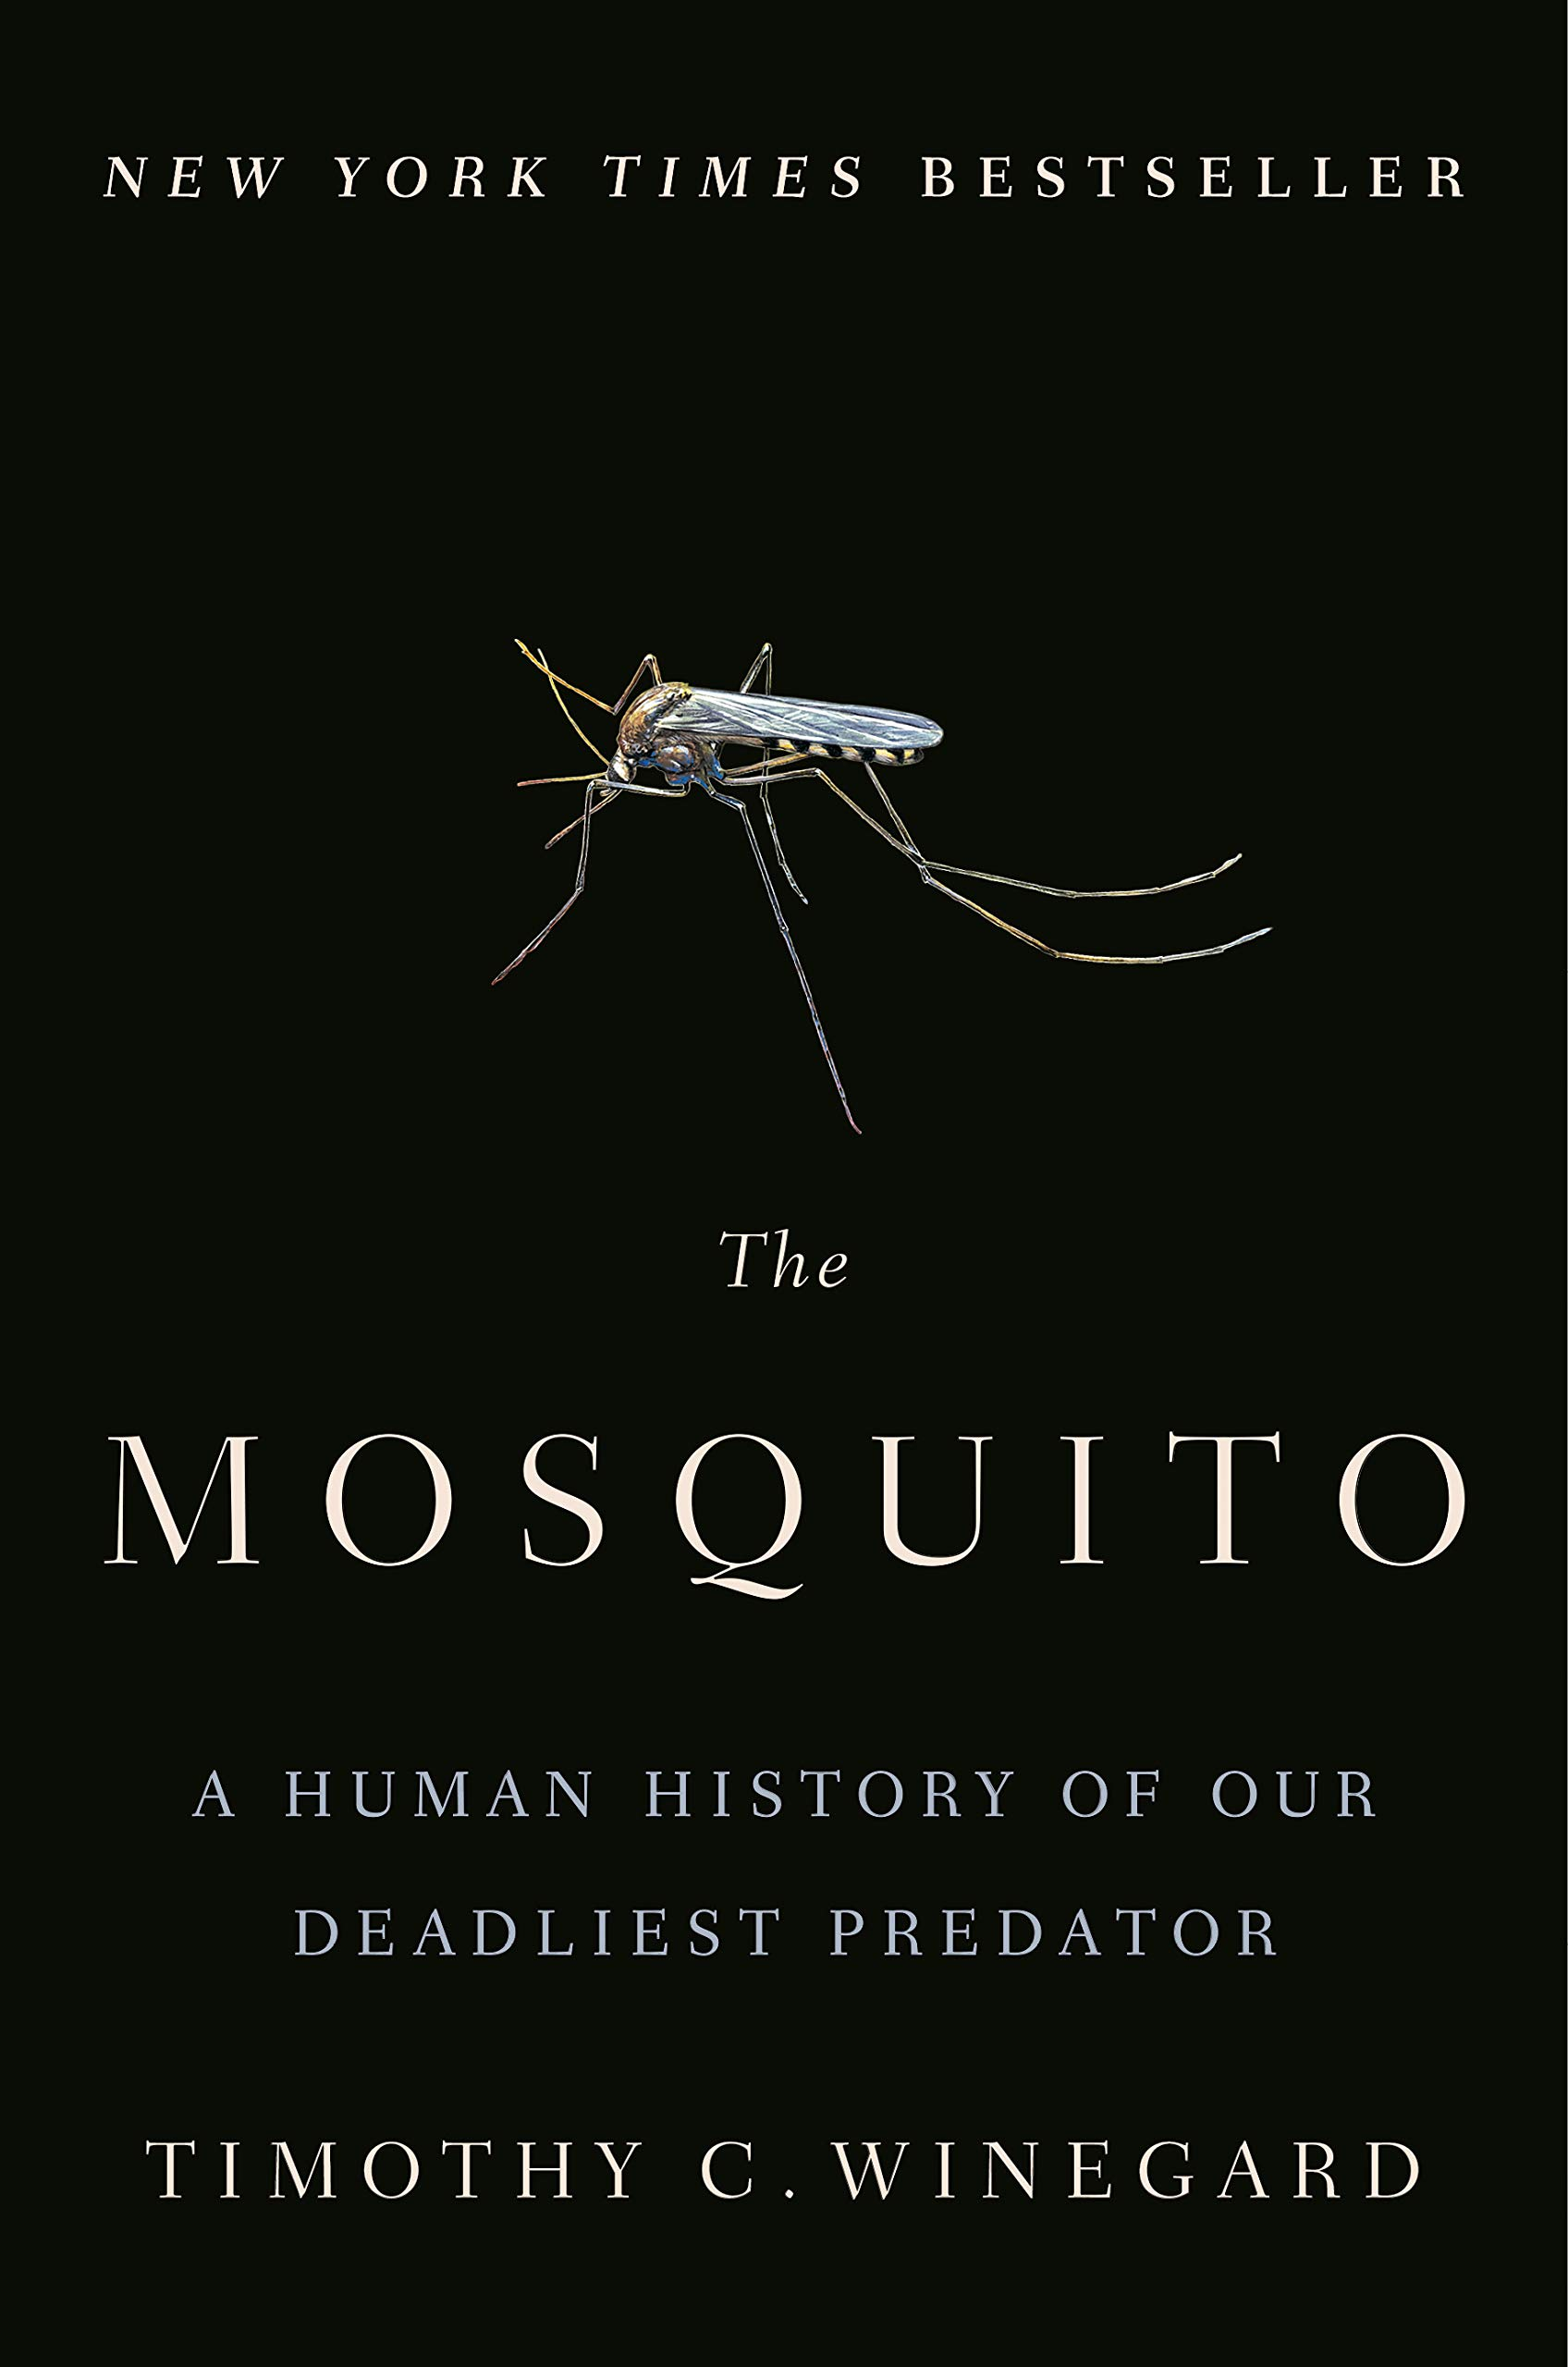 The Mosquito: A Human History of Our Deadliest Predator by Dutton